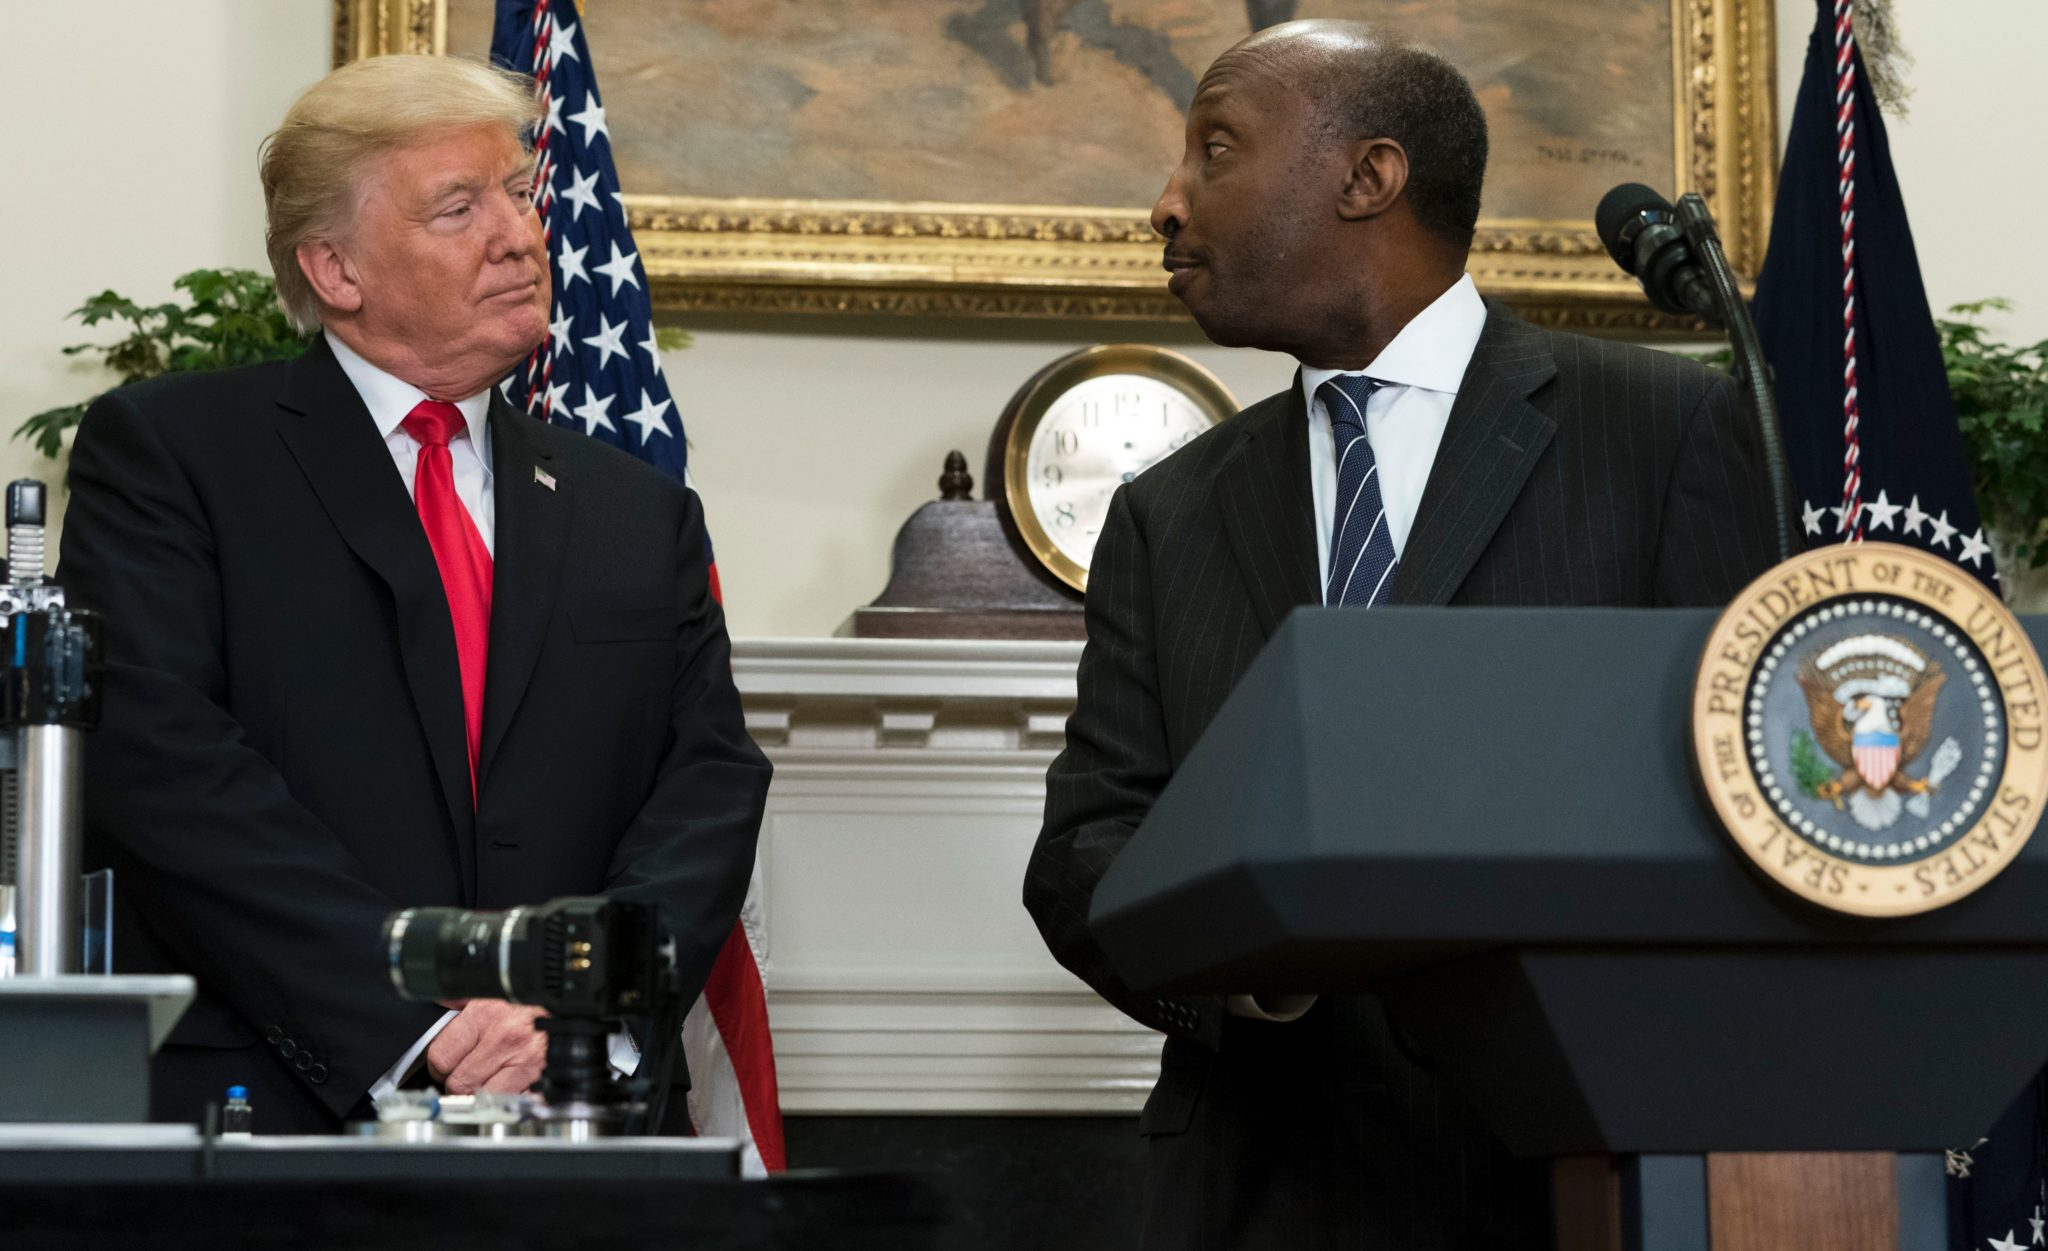 Merck CEO quits President Trump's council over Charlottesville